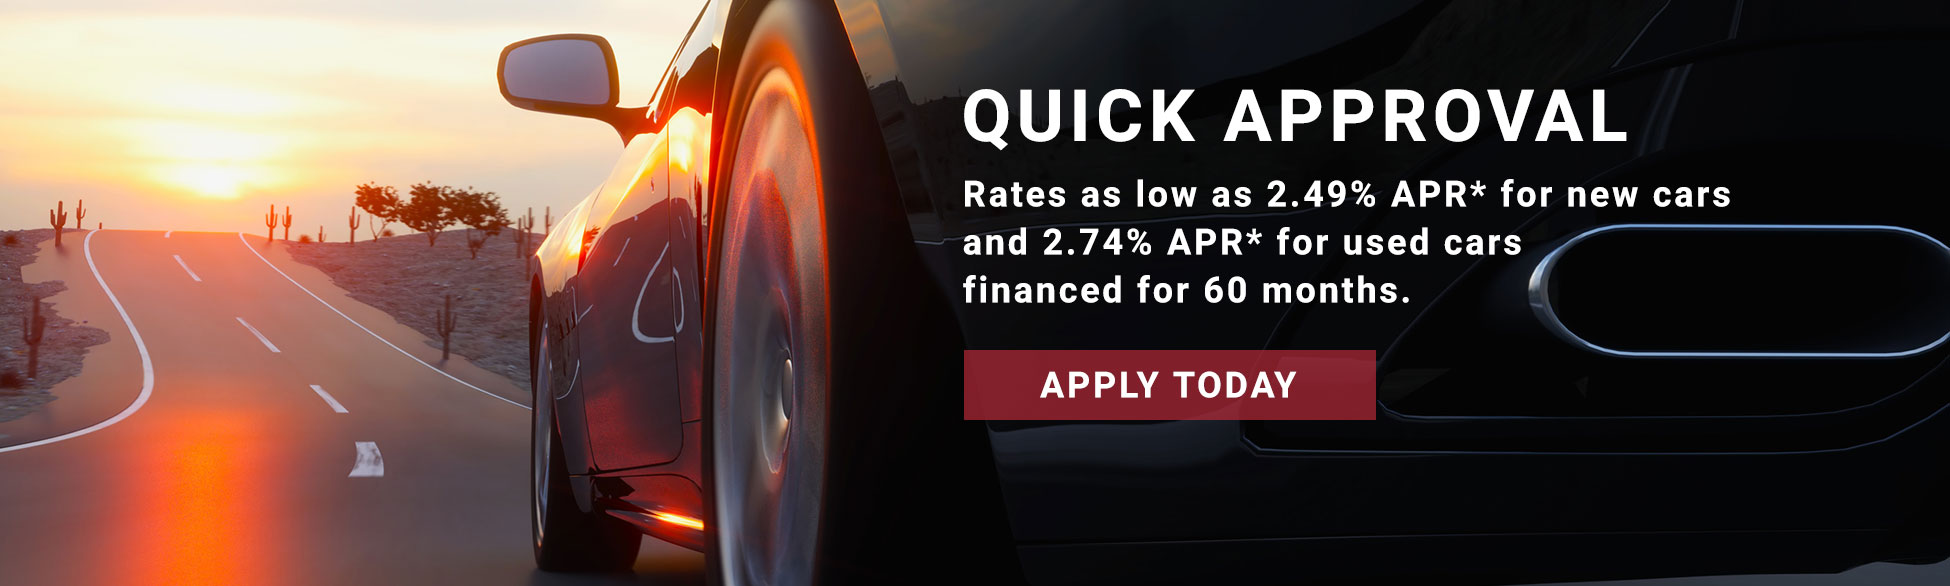 Quick approval. Rates as low as 2.49% APR* for new cars and 2.74% APR* for used cars financed for 60 months.